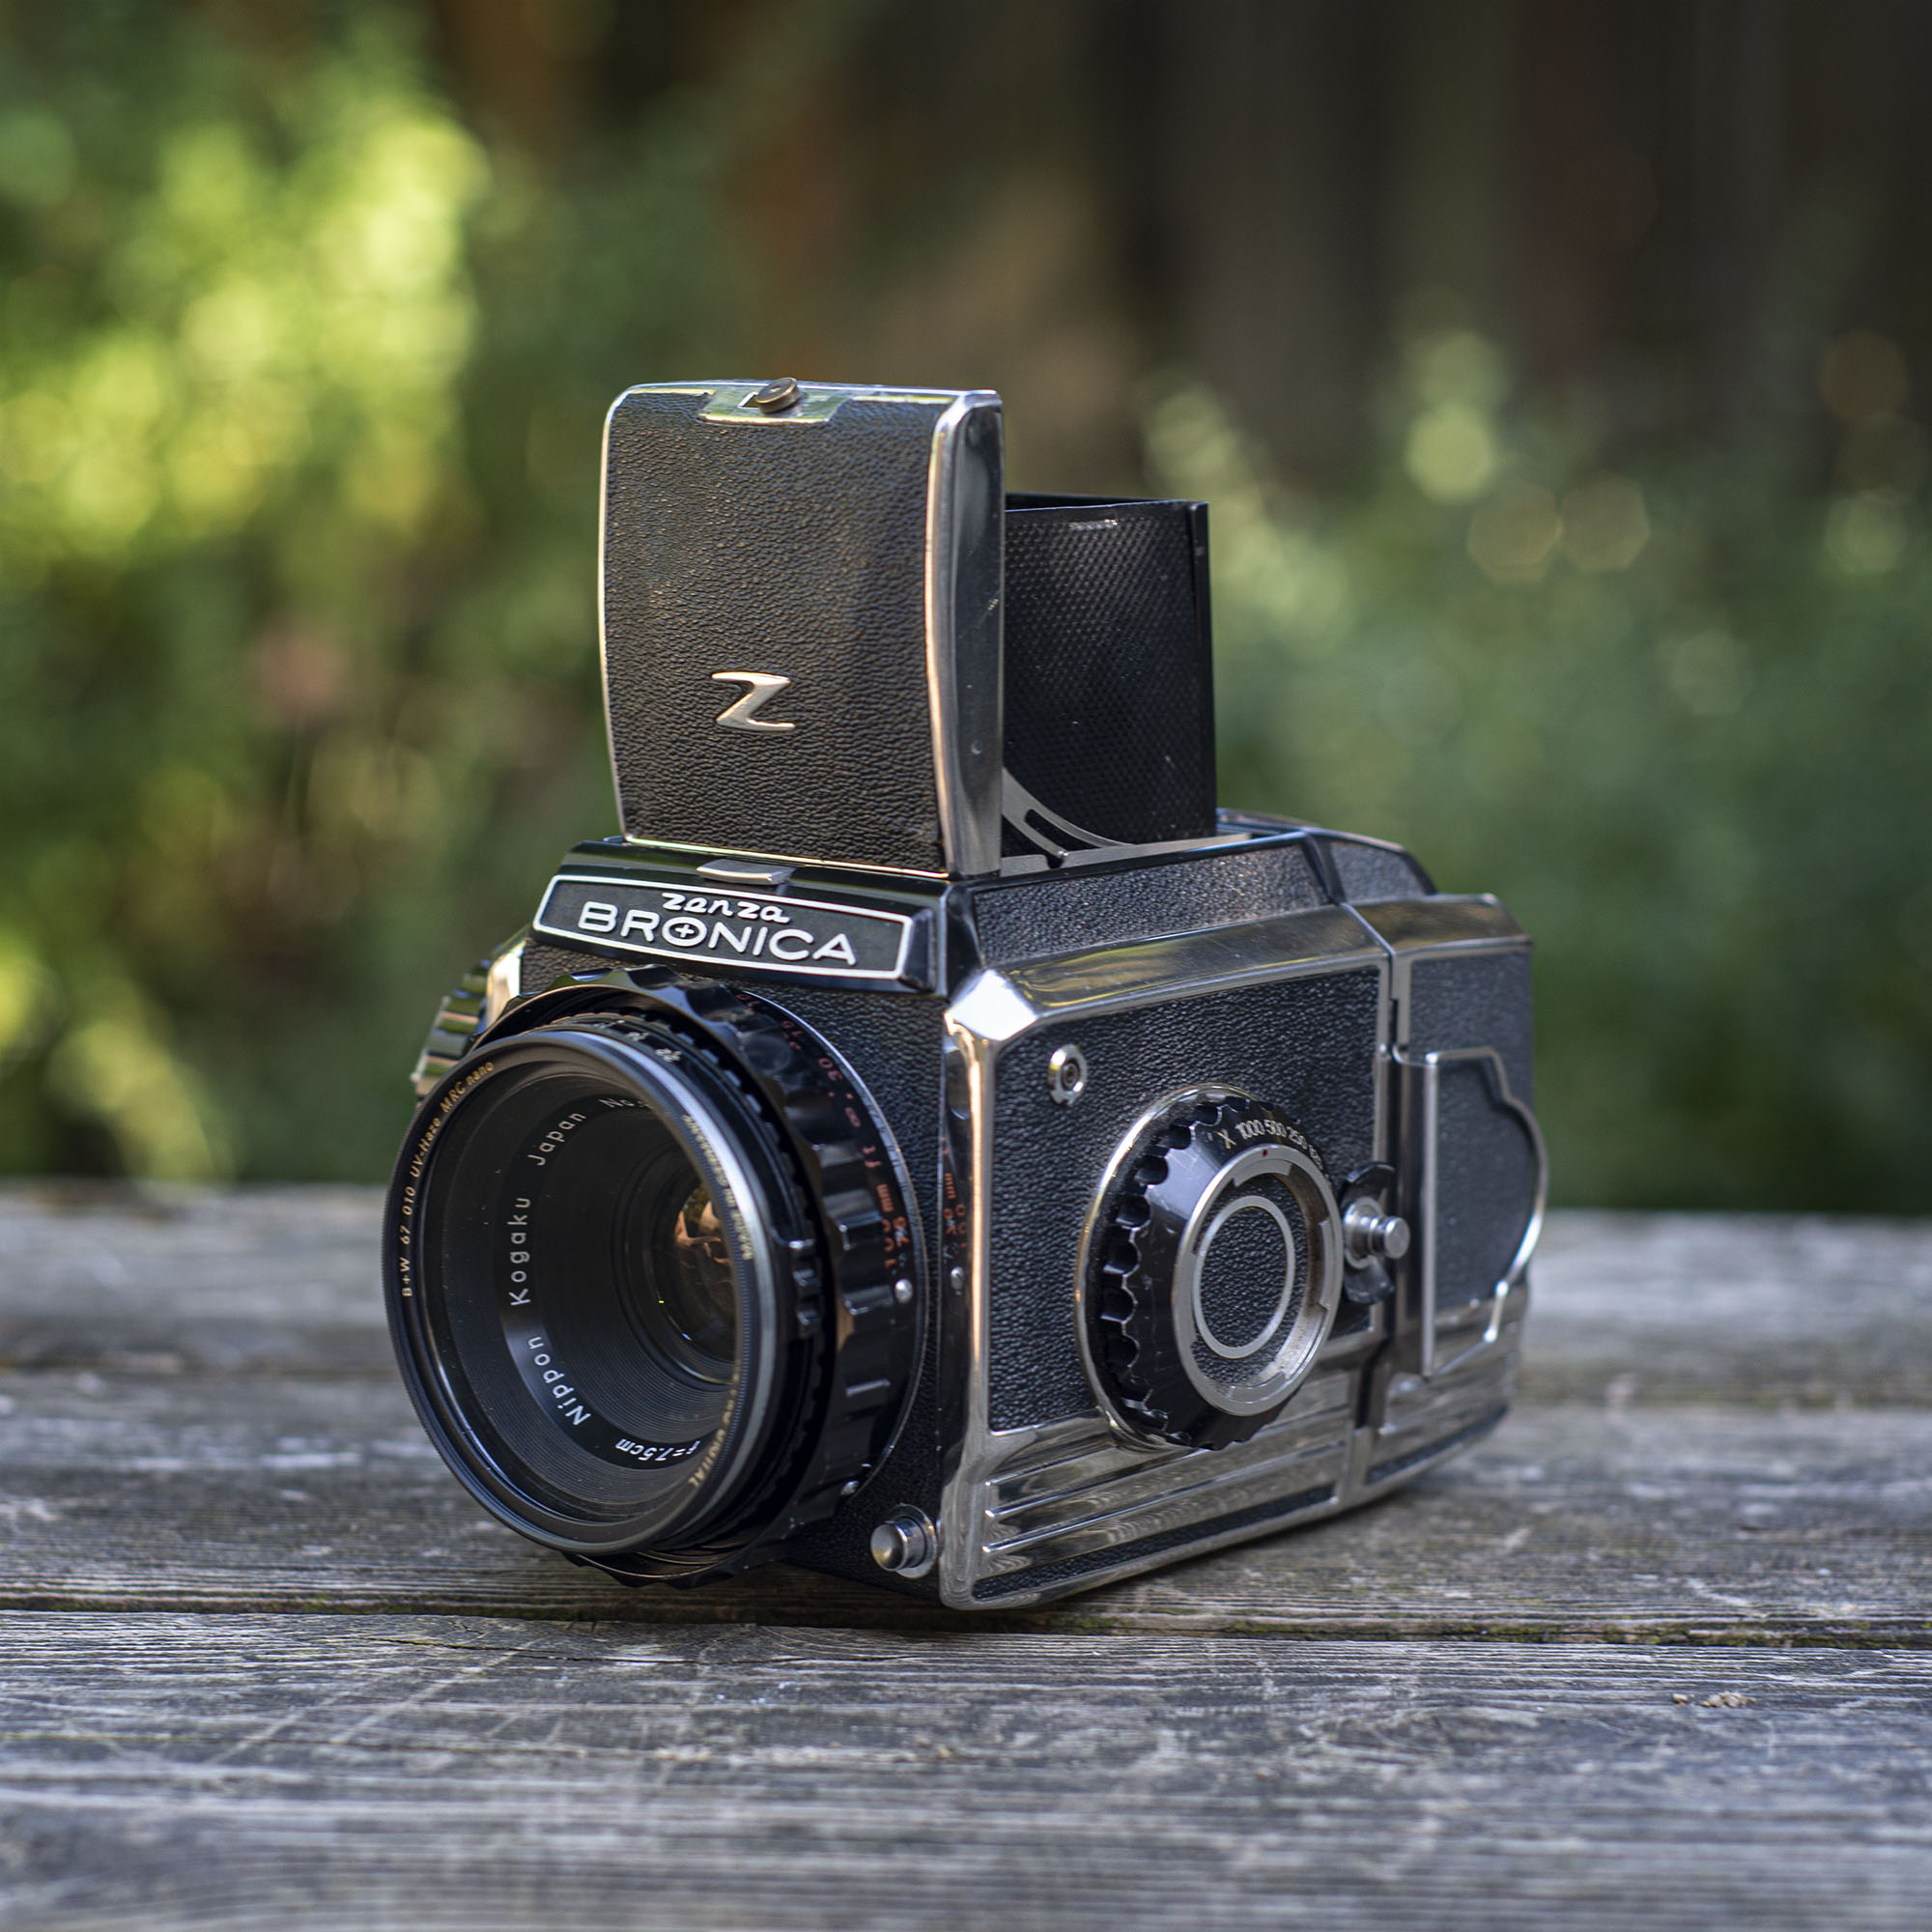 Bronica S2 left side with waist level finder open